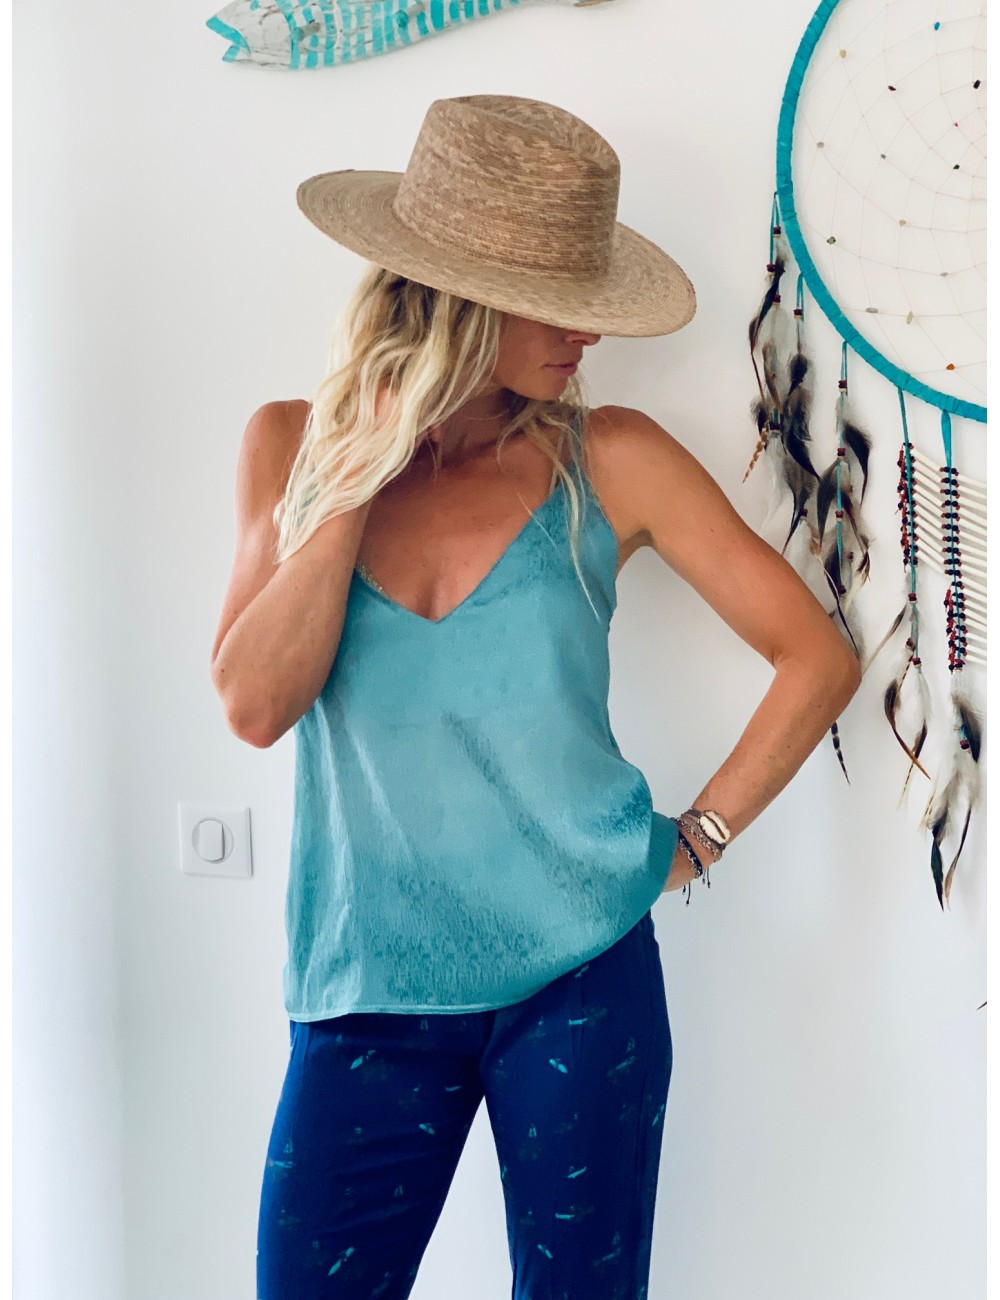 Wavy camisole - Collection Emerauld 2020 - Ematesse